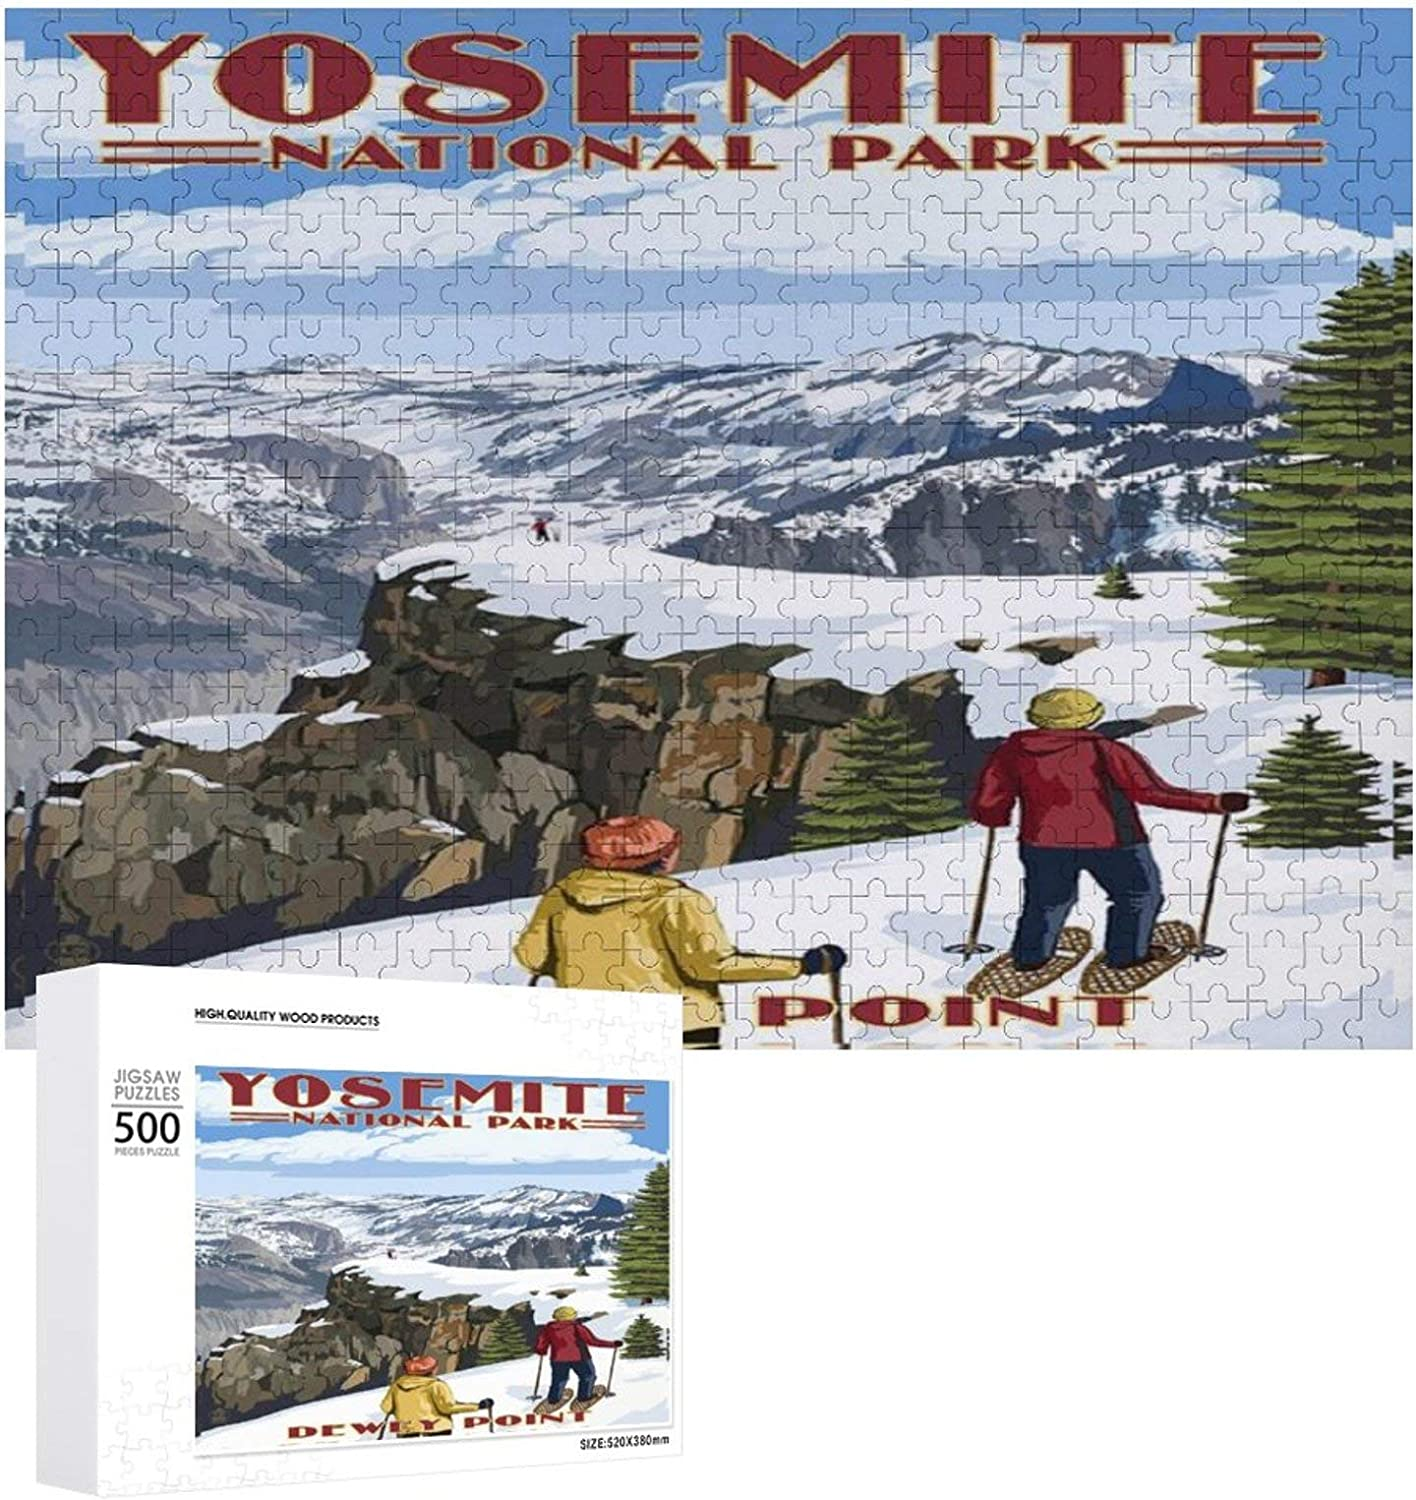 Yosemite National Park Winter Ski Travel Poster Jigsaw Puzzles for Adults 500 Piece with Wooden 20.5x15 inch Colorful